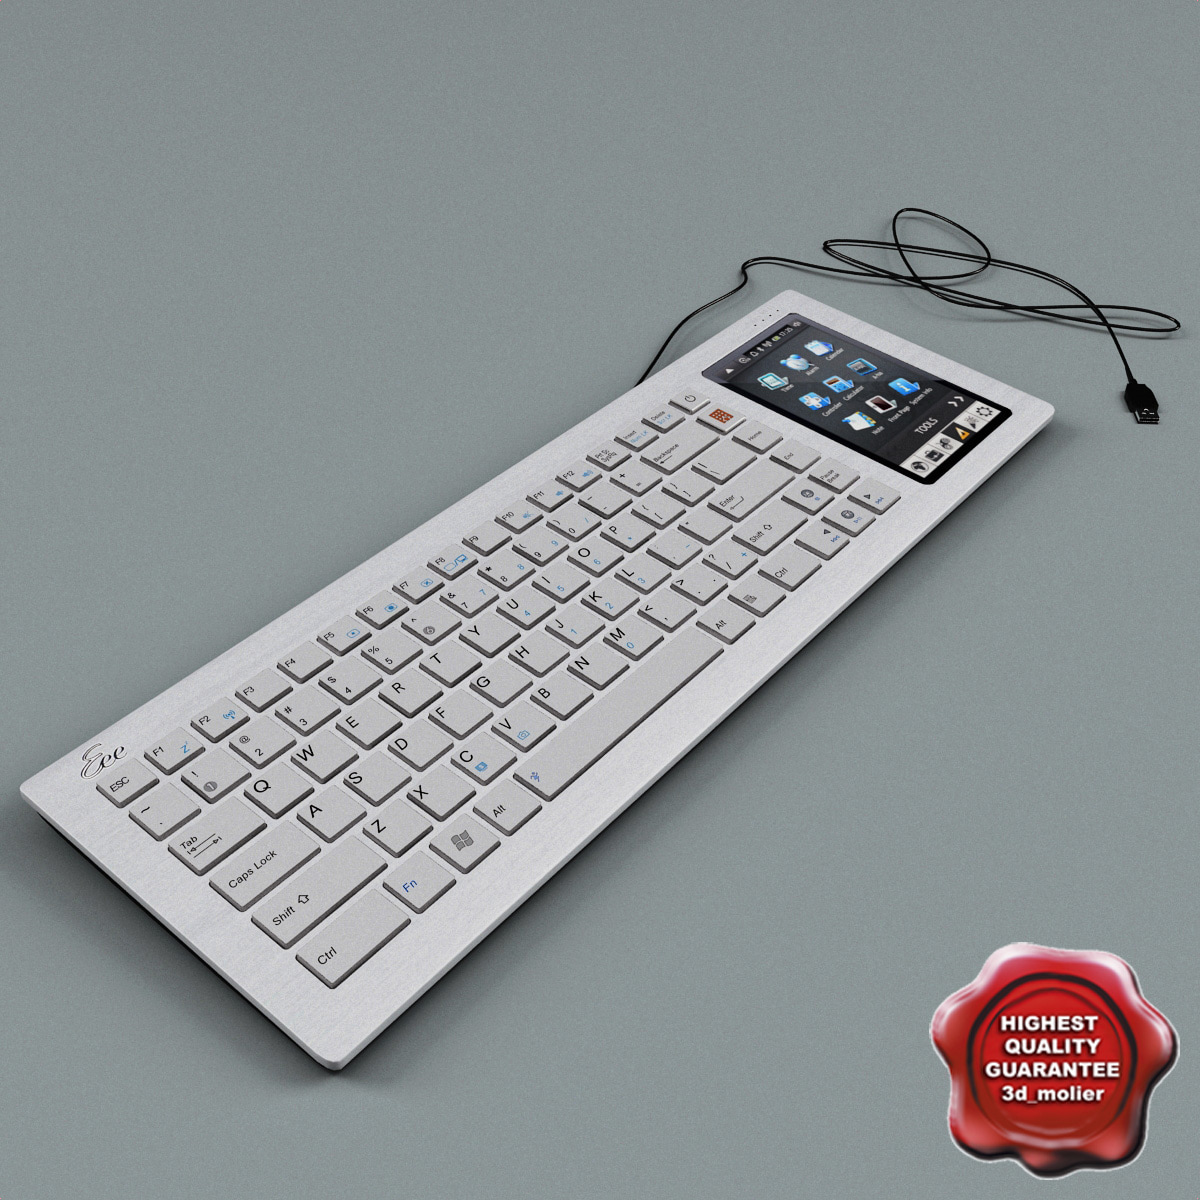 Asus_Eee_Keyboard_PC_00.jpg